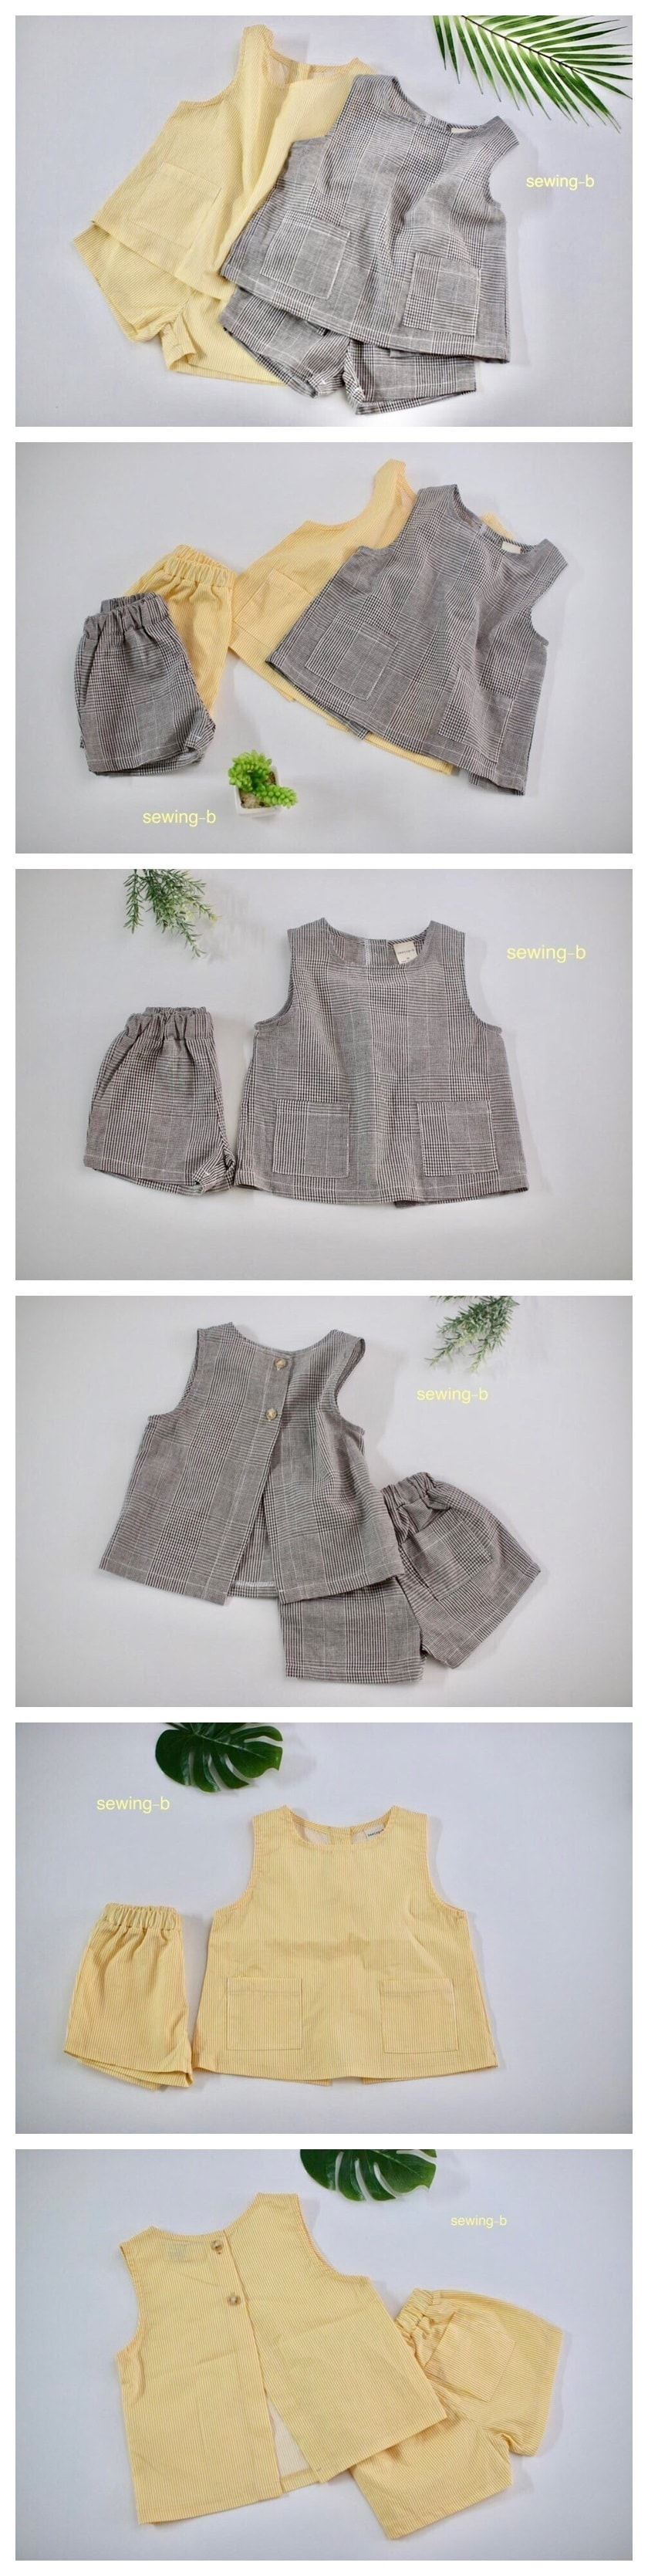 SEWING-B - Korean Children Fashion - #Kfashion4kids - Joy Set